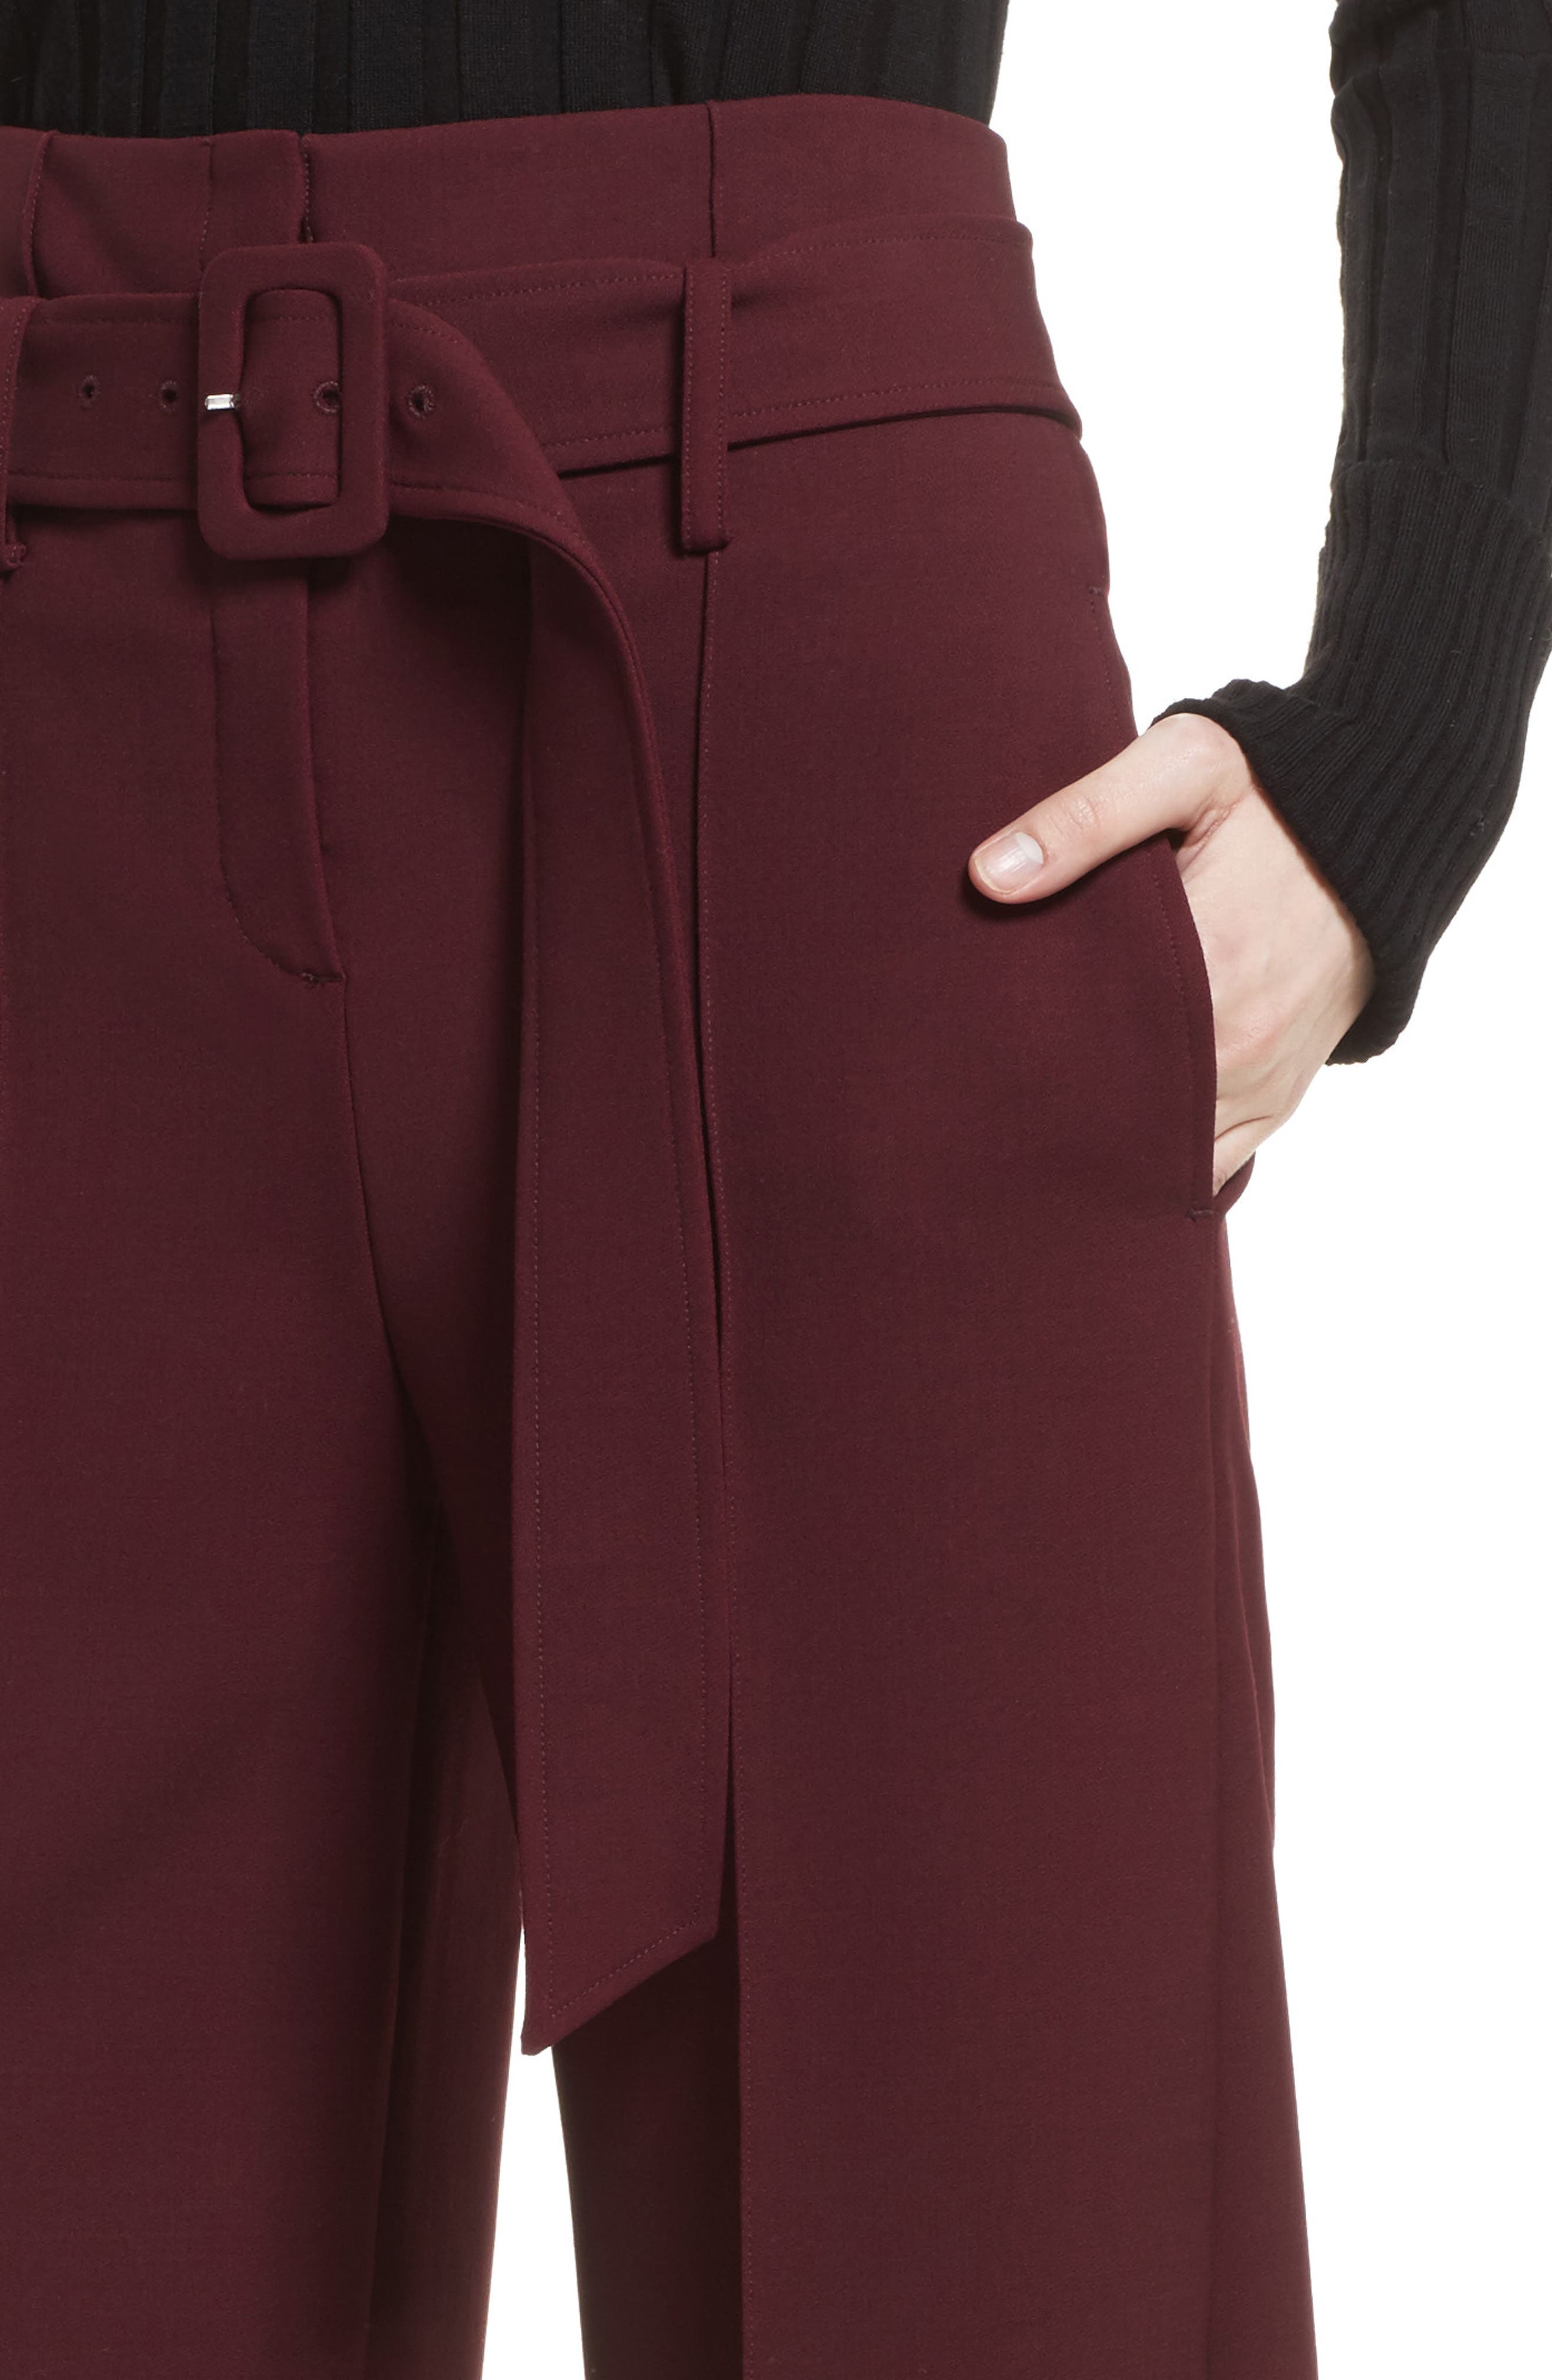 Camogie High Waist Belted Pants,                             Alternate thumbnail 4, color,                             Dark Currant